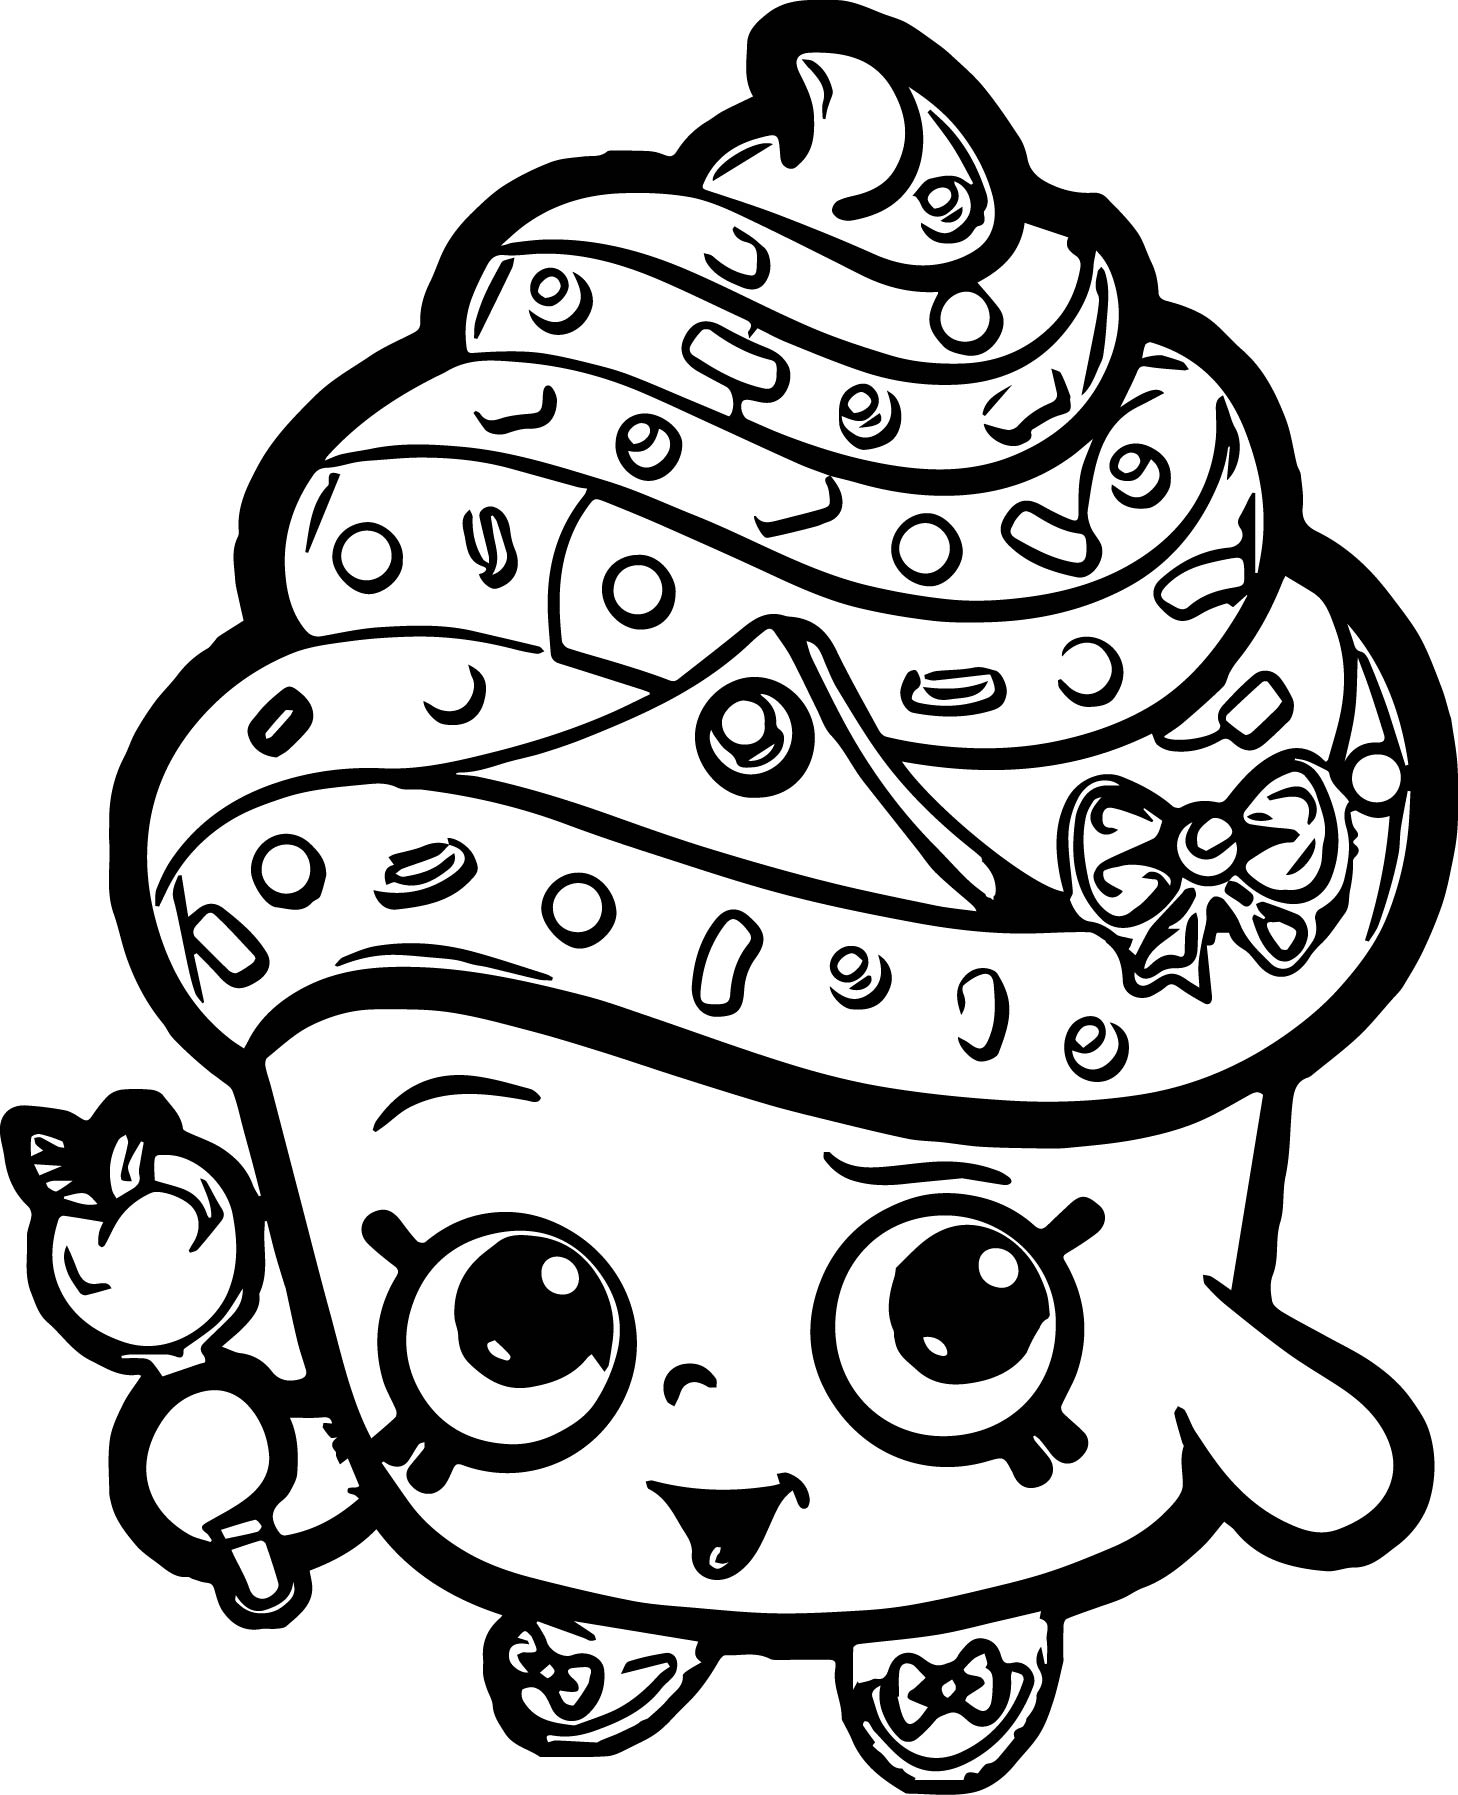 Shopkins color sheets - Coloring Pictures Of Shopkins Cupcake Queen Shopkins Coloring Page